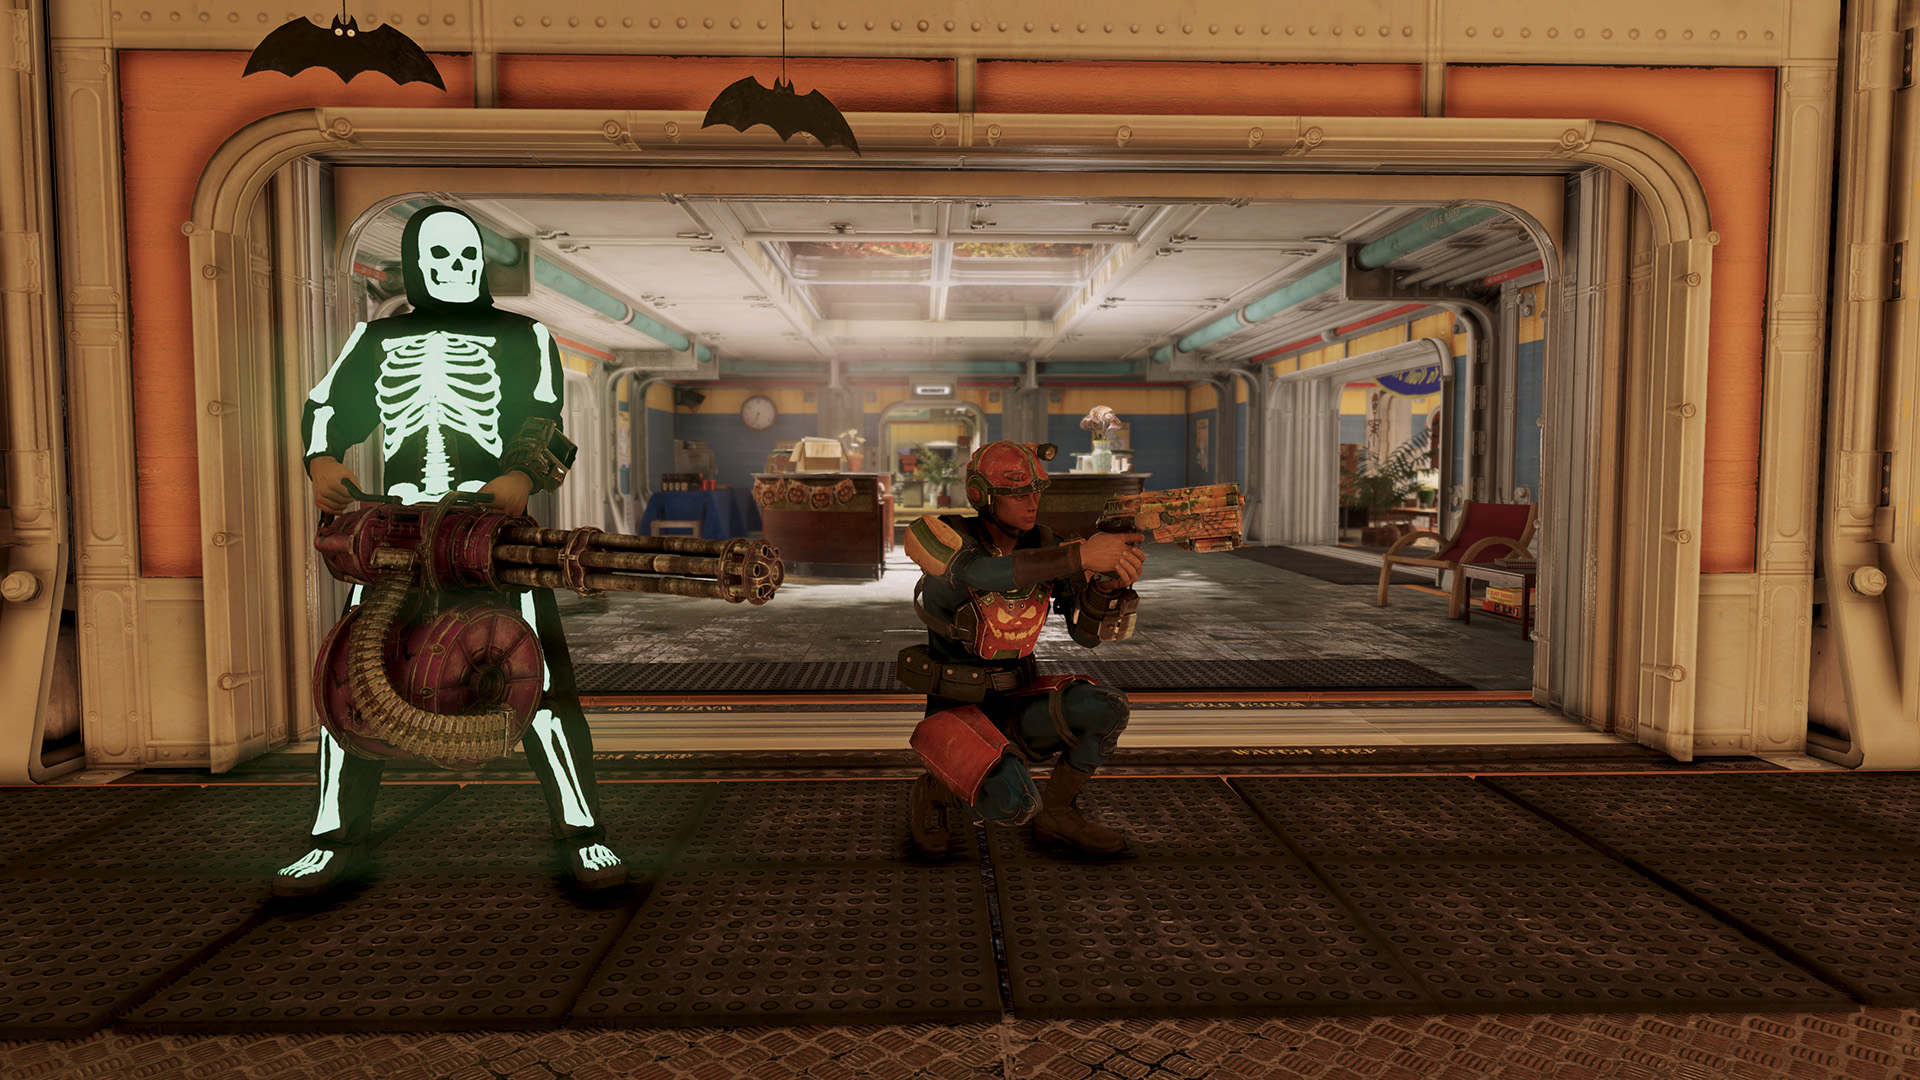 Fallout 4 Halloween 2020 Fallout 76: Inside the Vault – Happy Halloween!